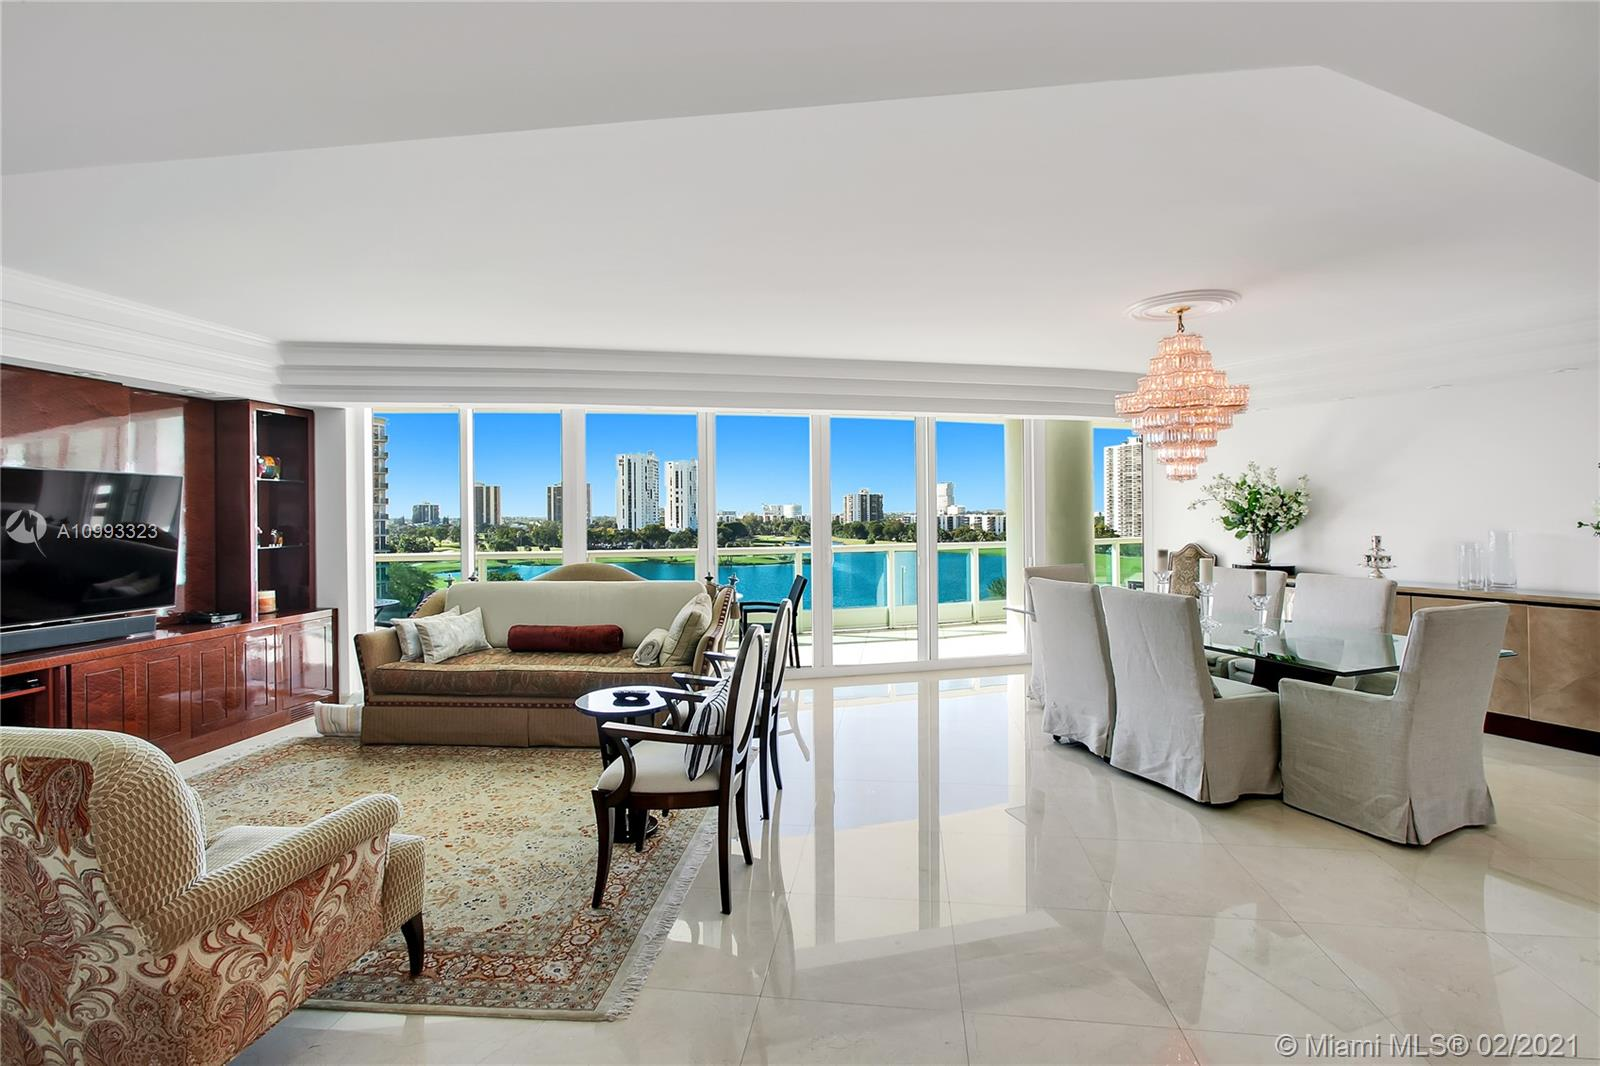 20155 38th Ct Unit 1005, Aventura, Florida 33180